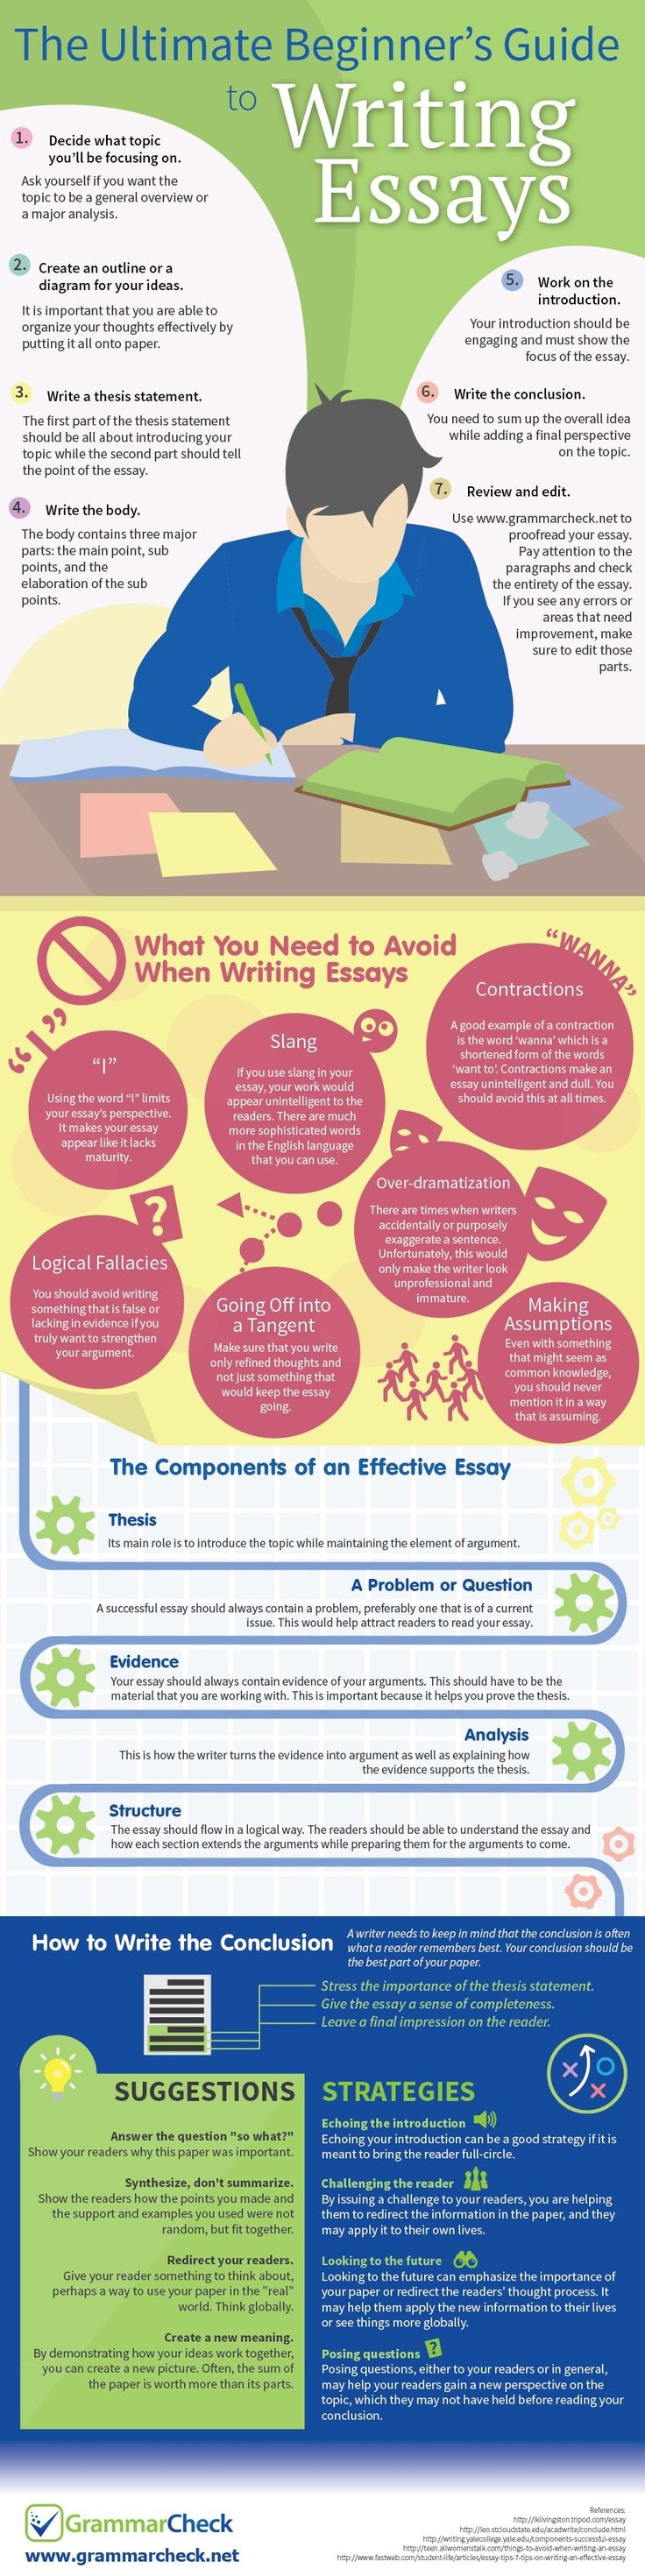 Essays On Science Best Ideas About Grammar Check Grammar English  Best Ideas About Grammar  Check Grammar English Language Examples Of Thesis Statements For Narrative Essays also High School Dropout Essay Check Essays Essay Check Research Paper For Plagiarism Check  How To Write A Proposal For An Essay